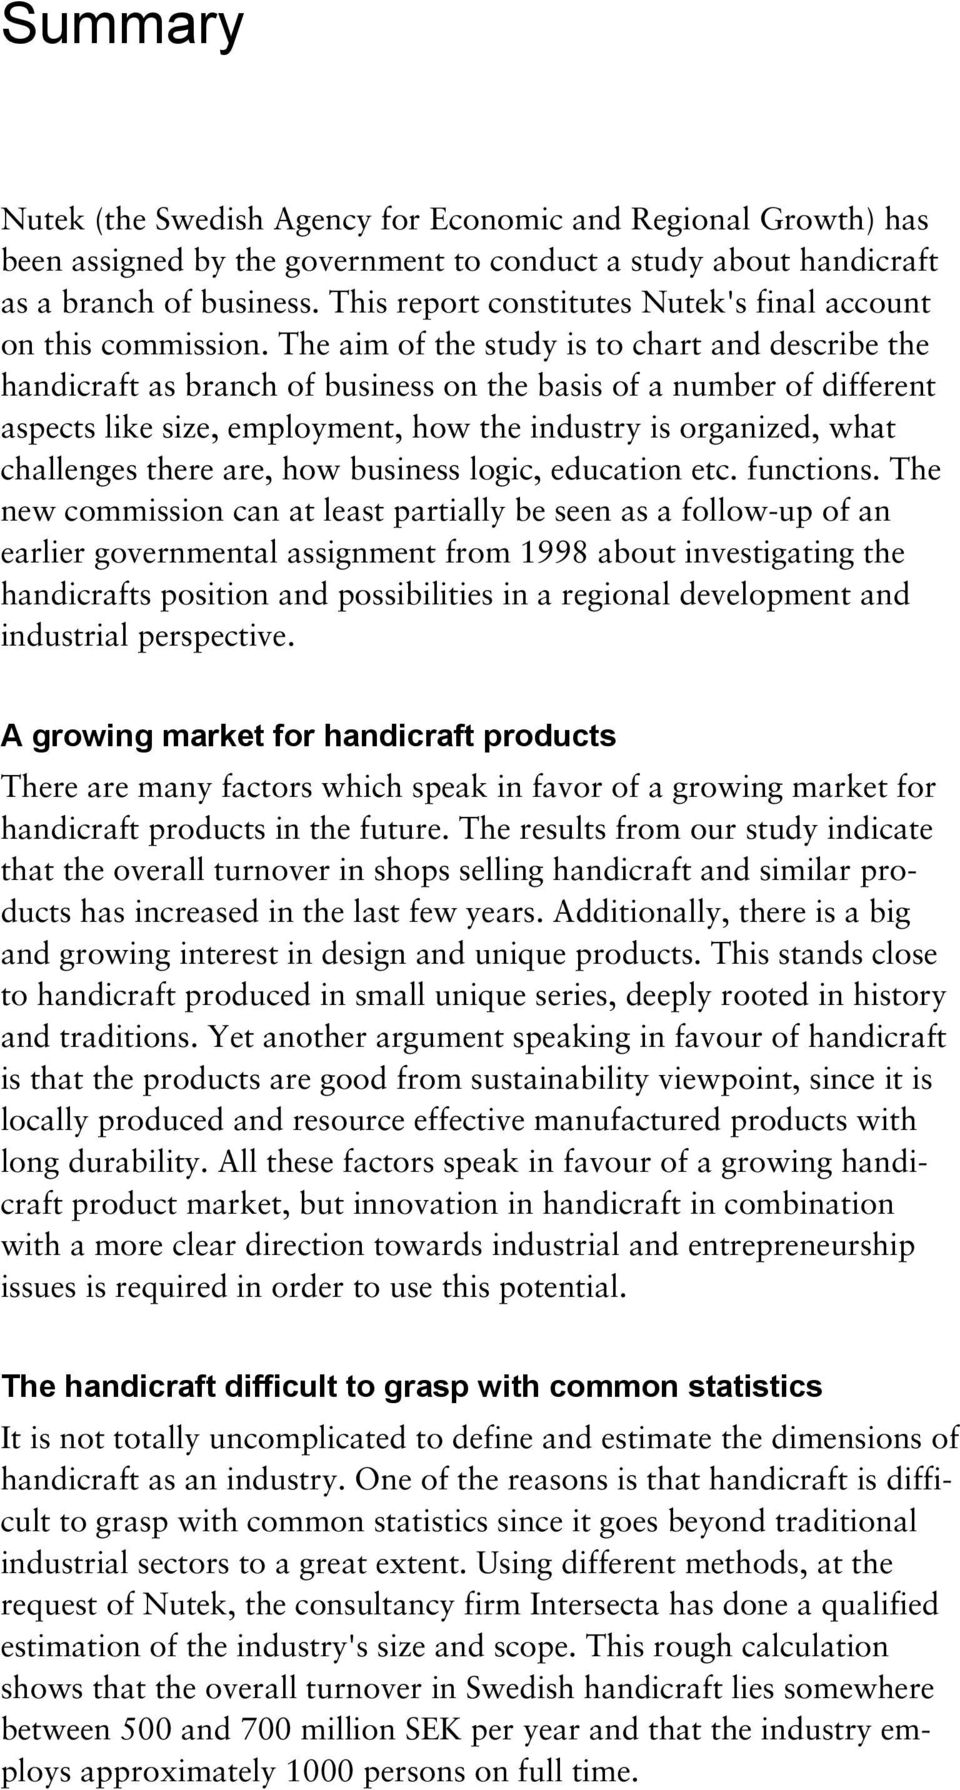 The aim of the study is to chart and describe the handicraft as branch of business on the basis of a number of different aspects like size, employment, how the industry is organized, what challenges